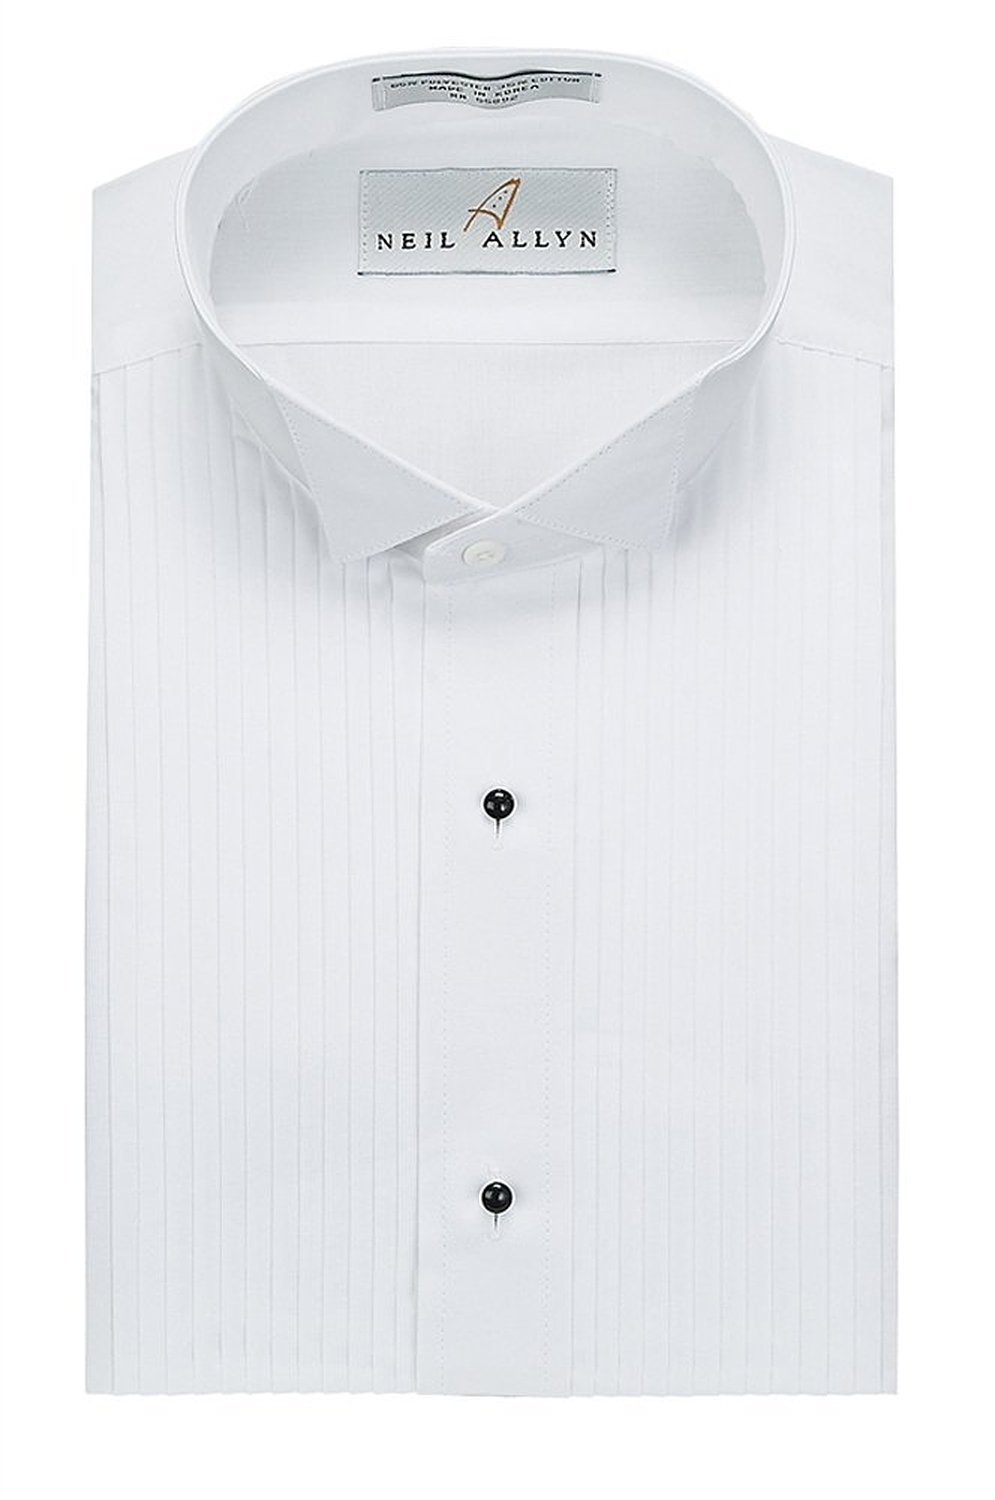 Neil Allyn Men's Tuxedo Shirt Poly/Cotton Wing Collar 1/4 Inch Pleat (22.5-34/35) by Neil Allyn